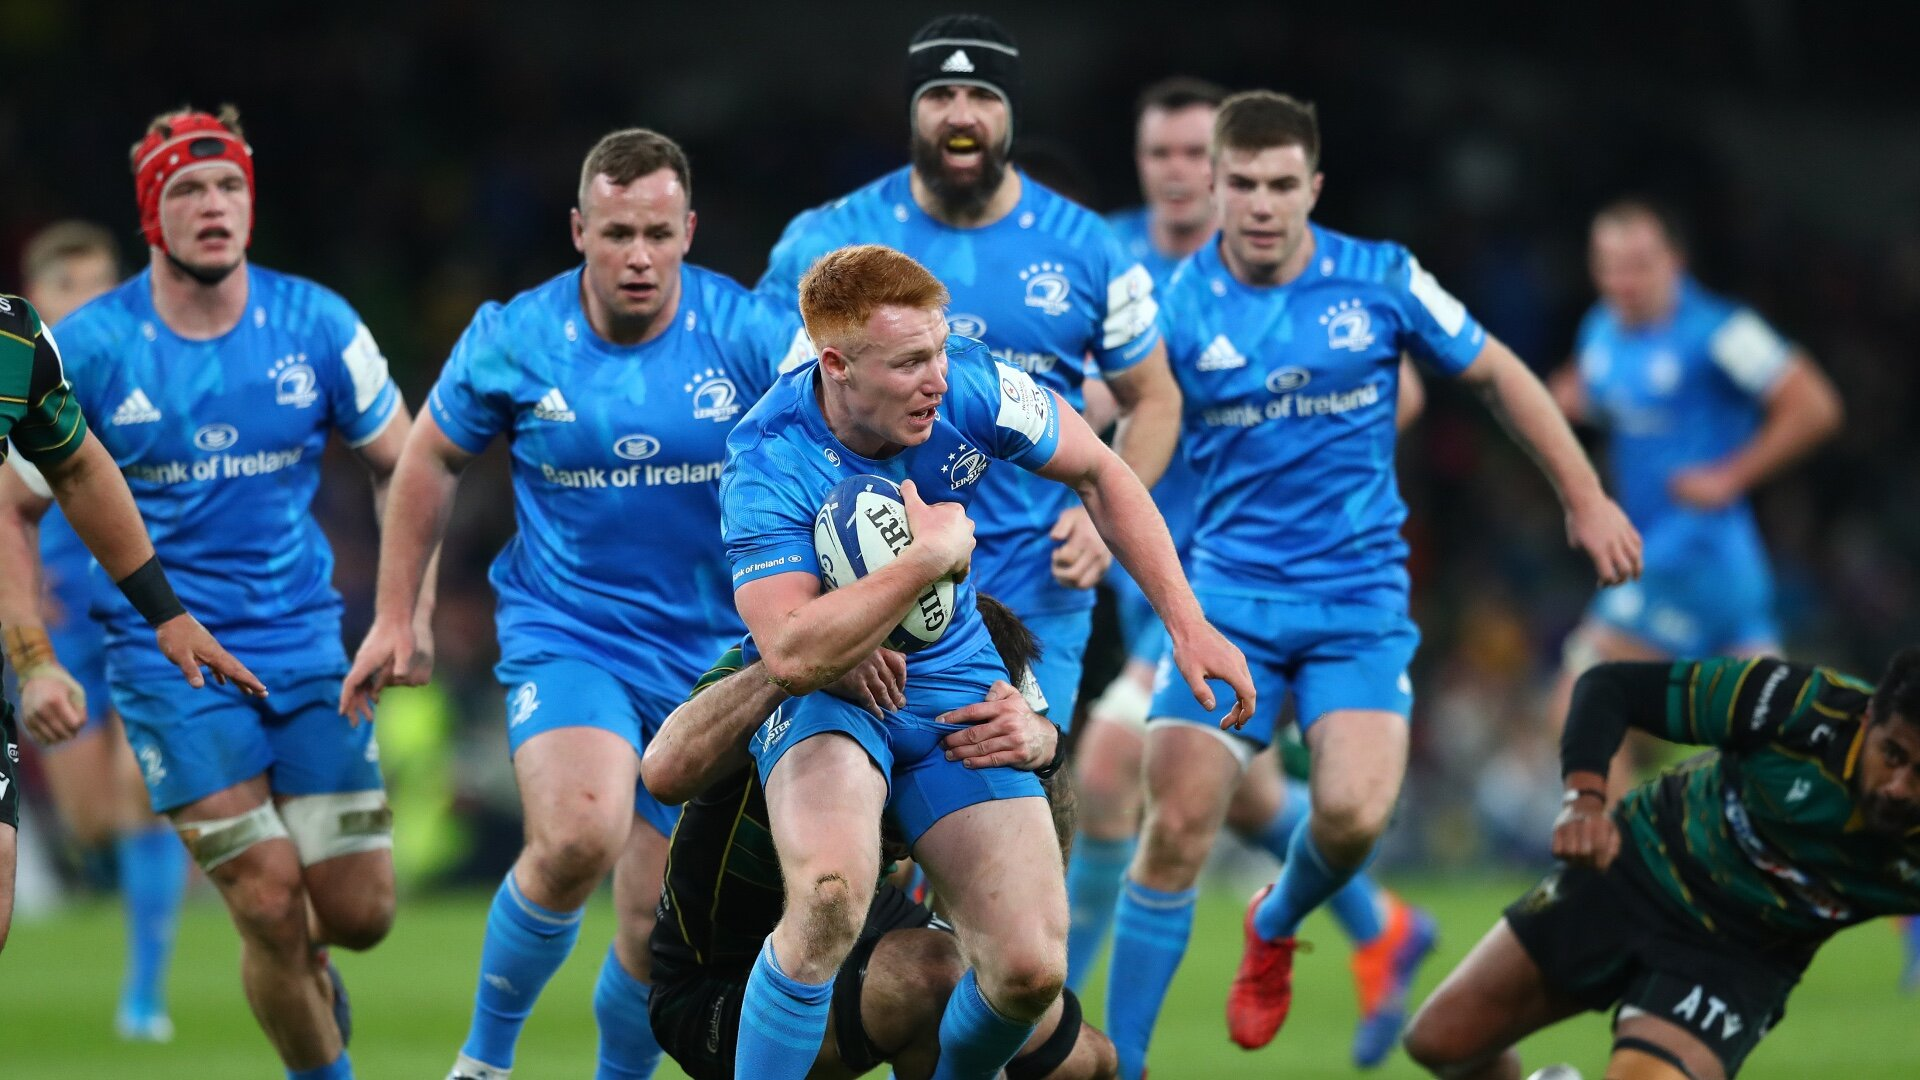 Leinster formidable